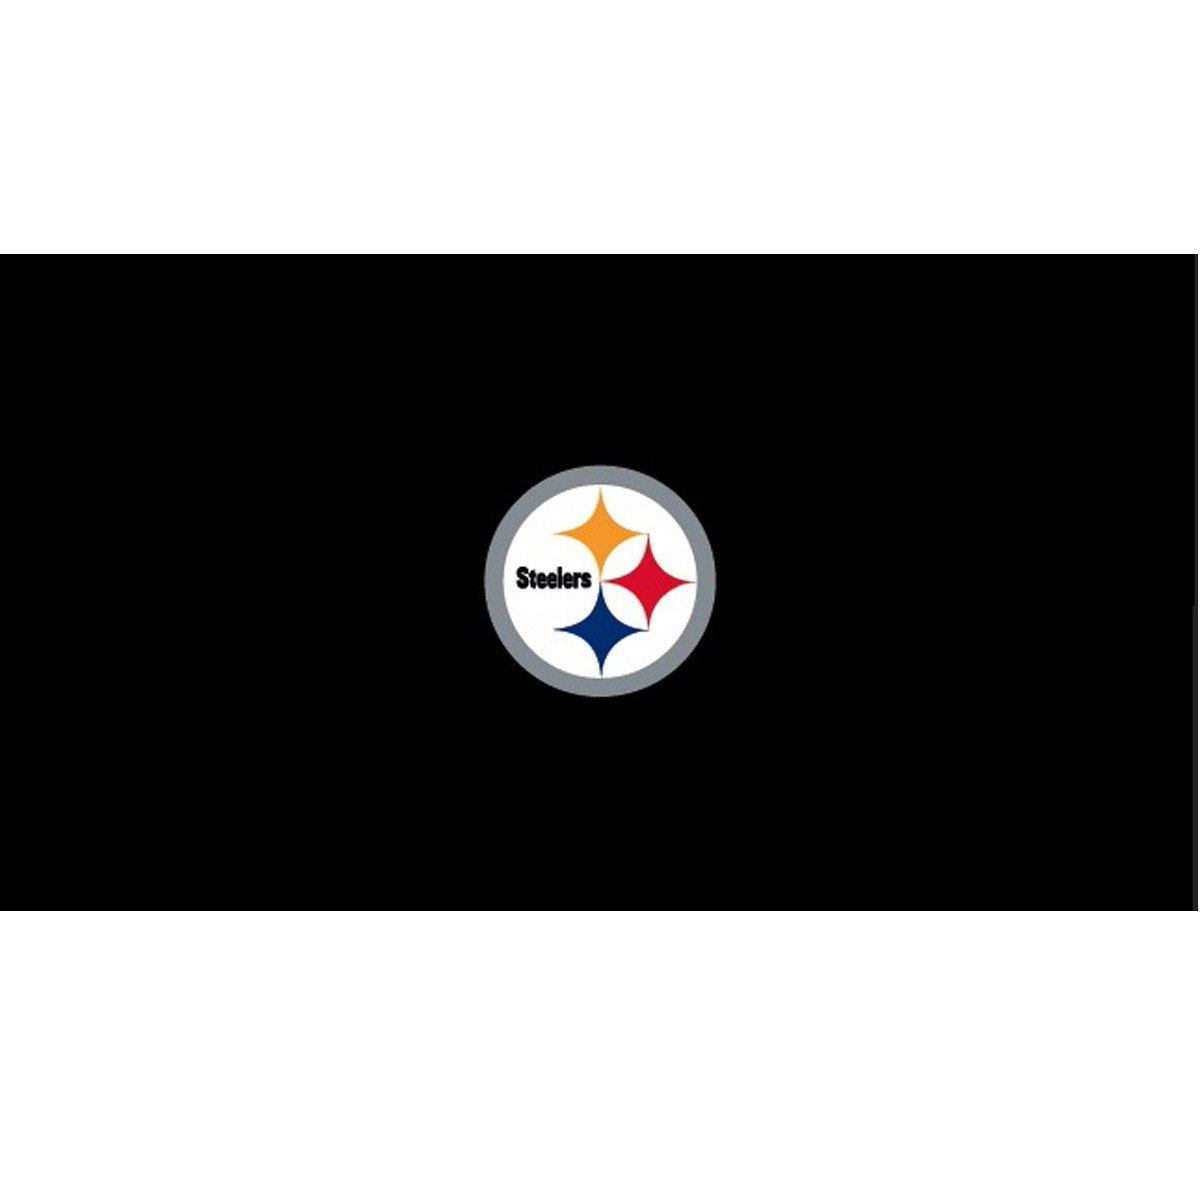 PITTSBURGH STEELERS 8-FOOT BILLIARD CLOTH